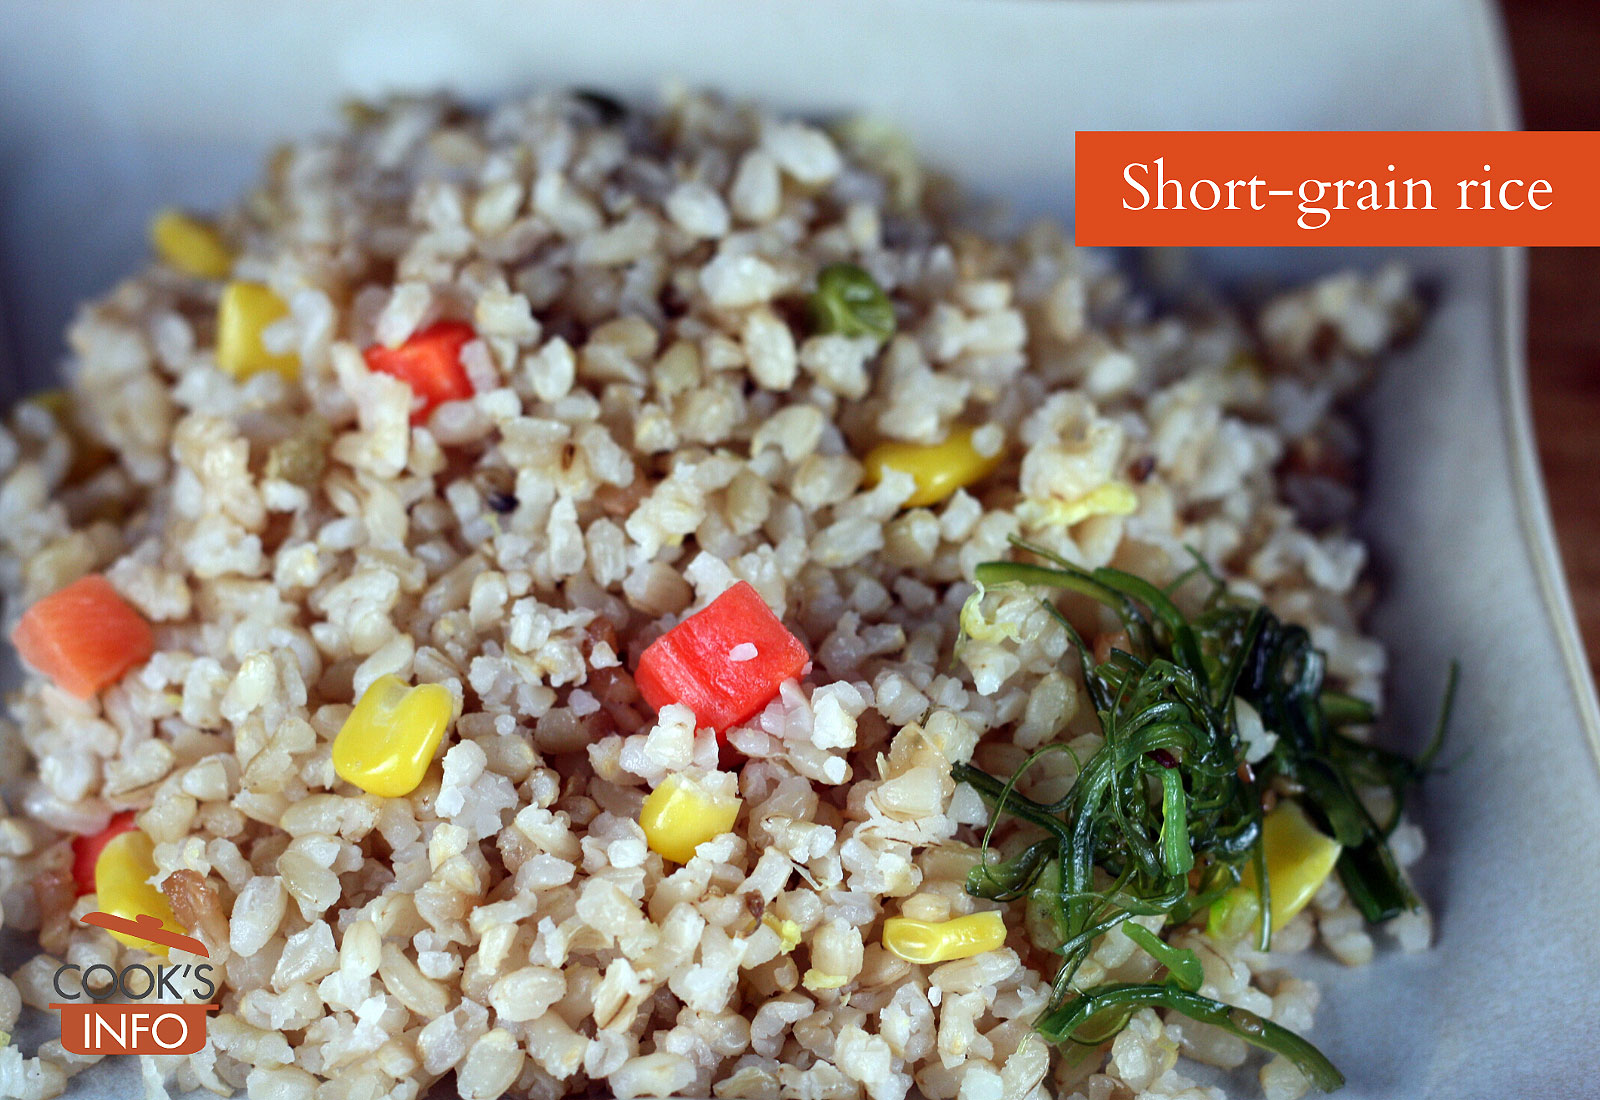 Short-grain rice, cooked